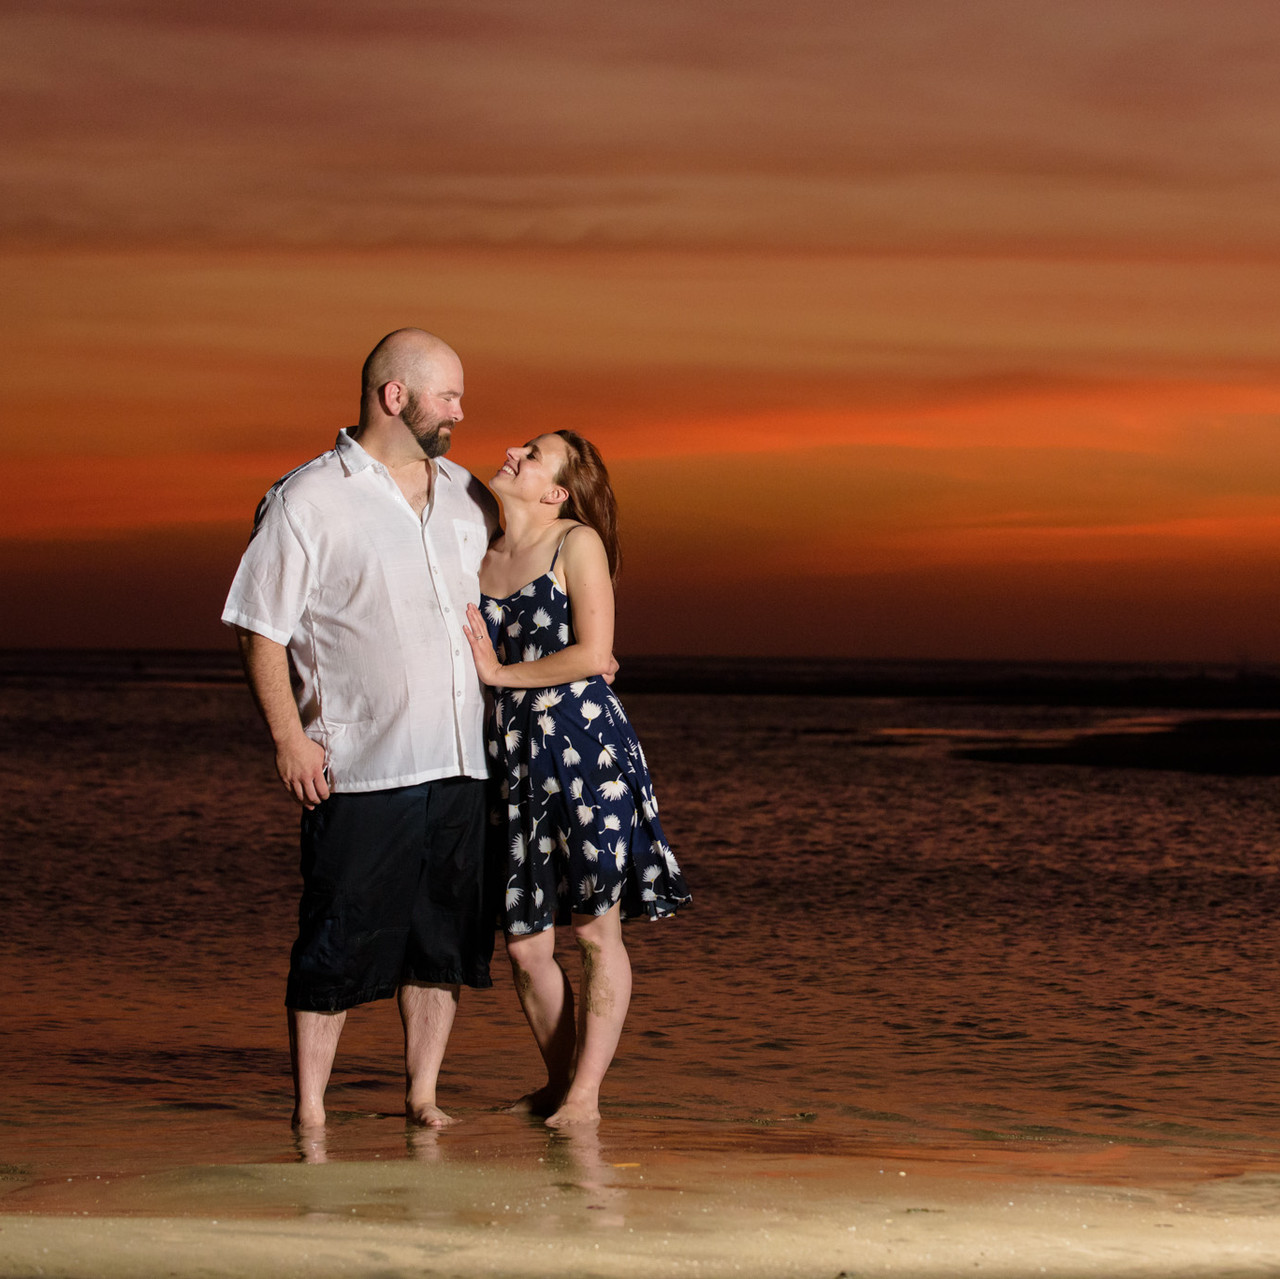 Romance and sunsets in Tamarindo